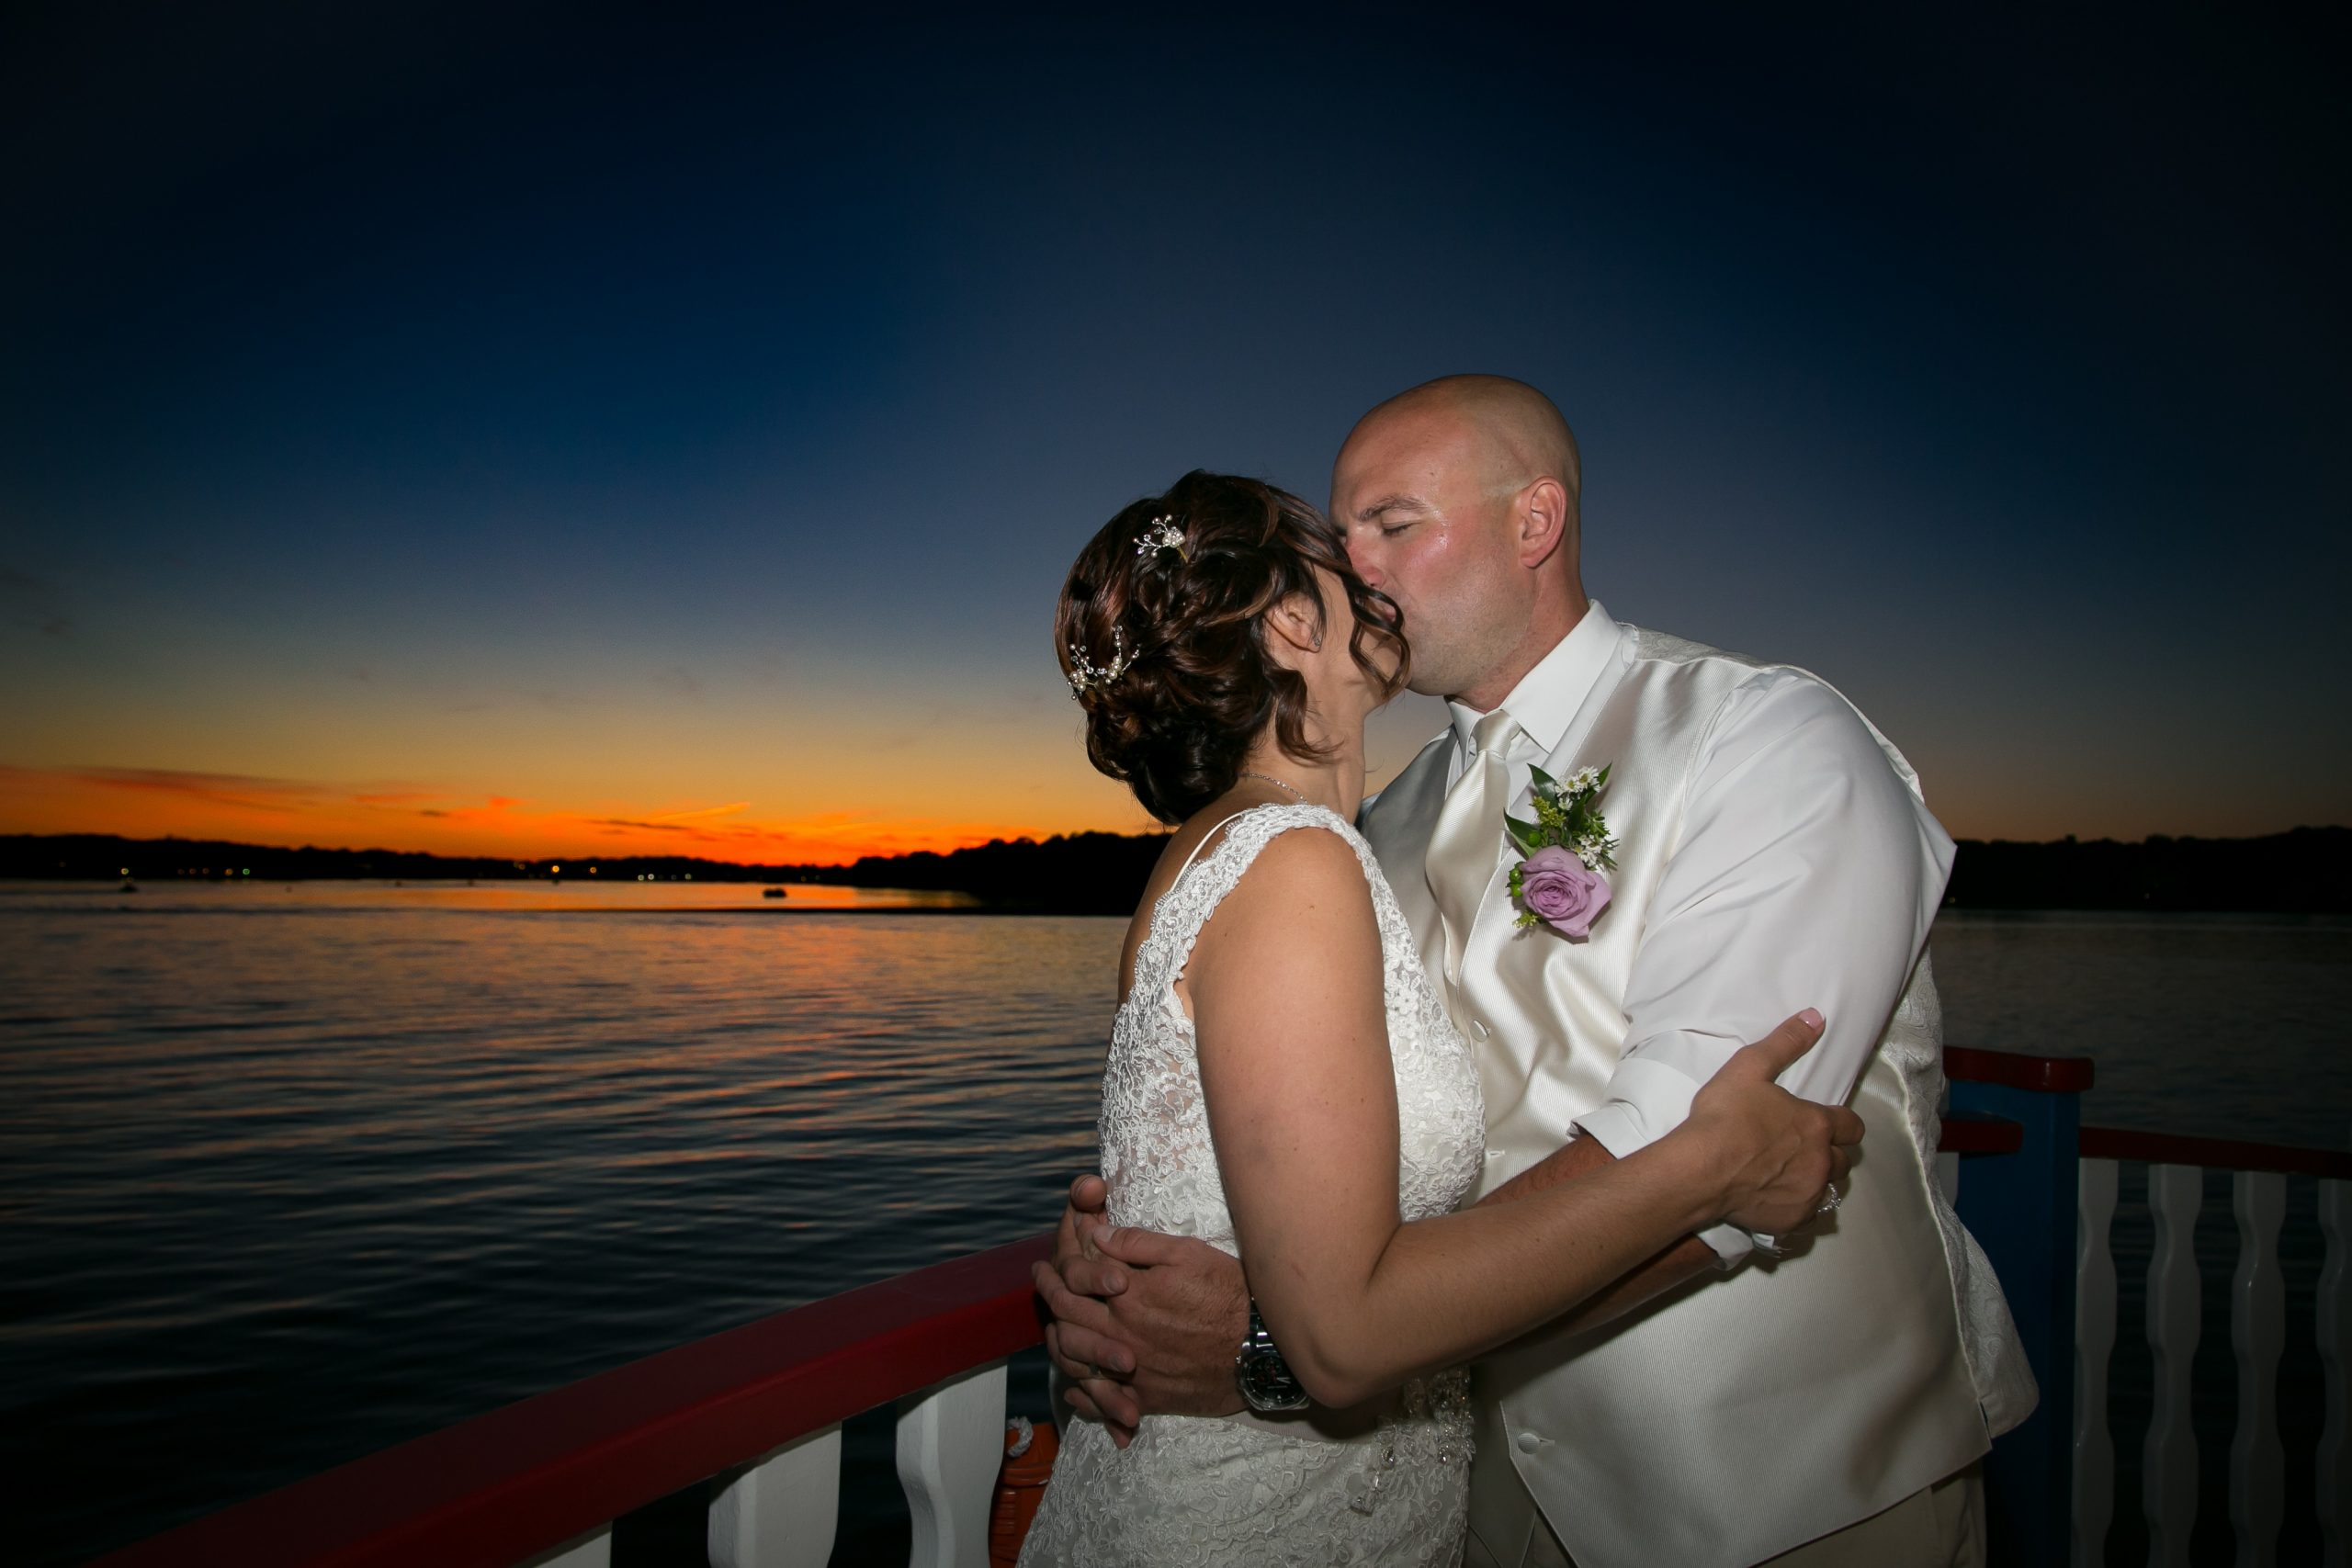 EliteEntertainment_EliteImages_NJWedding_RiverQueen